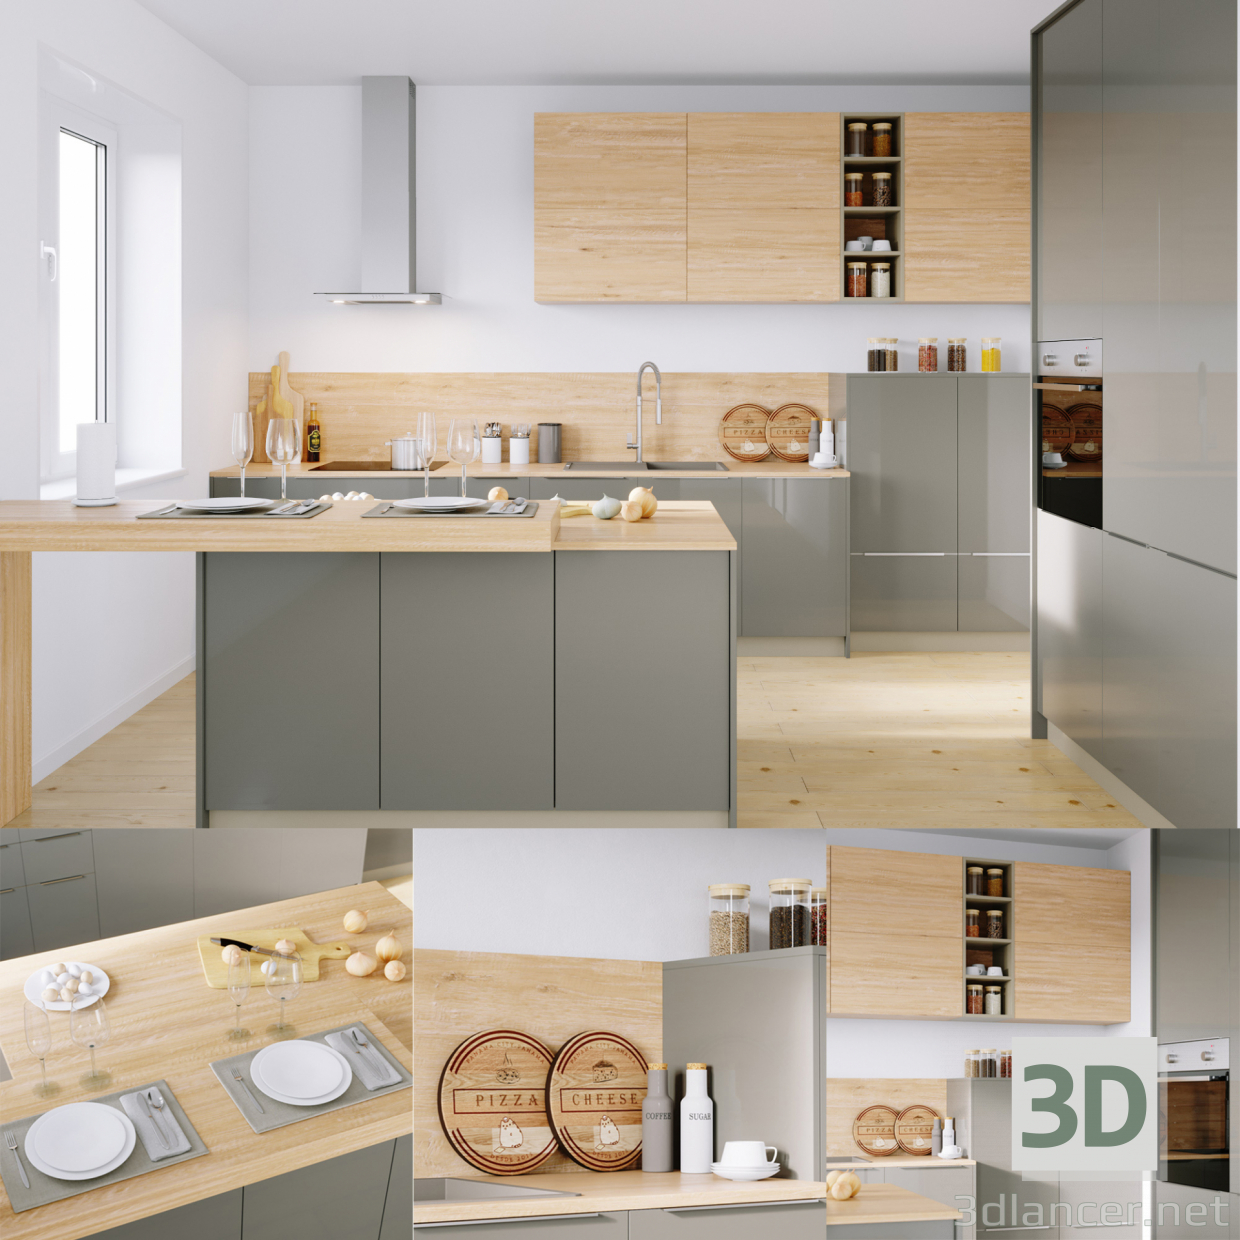 Kitchen Design 3d Model 3d Model Kitchen Nolte Corona 19q Legno 59c Corona Pbr Available